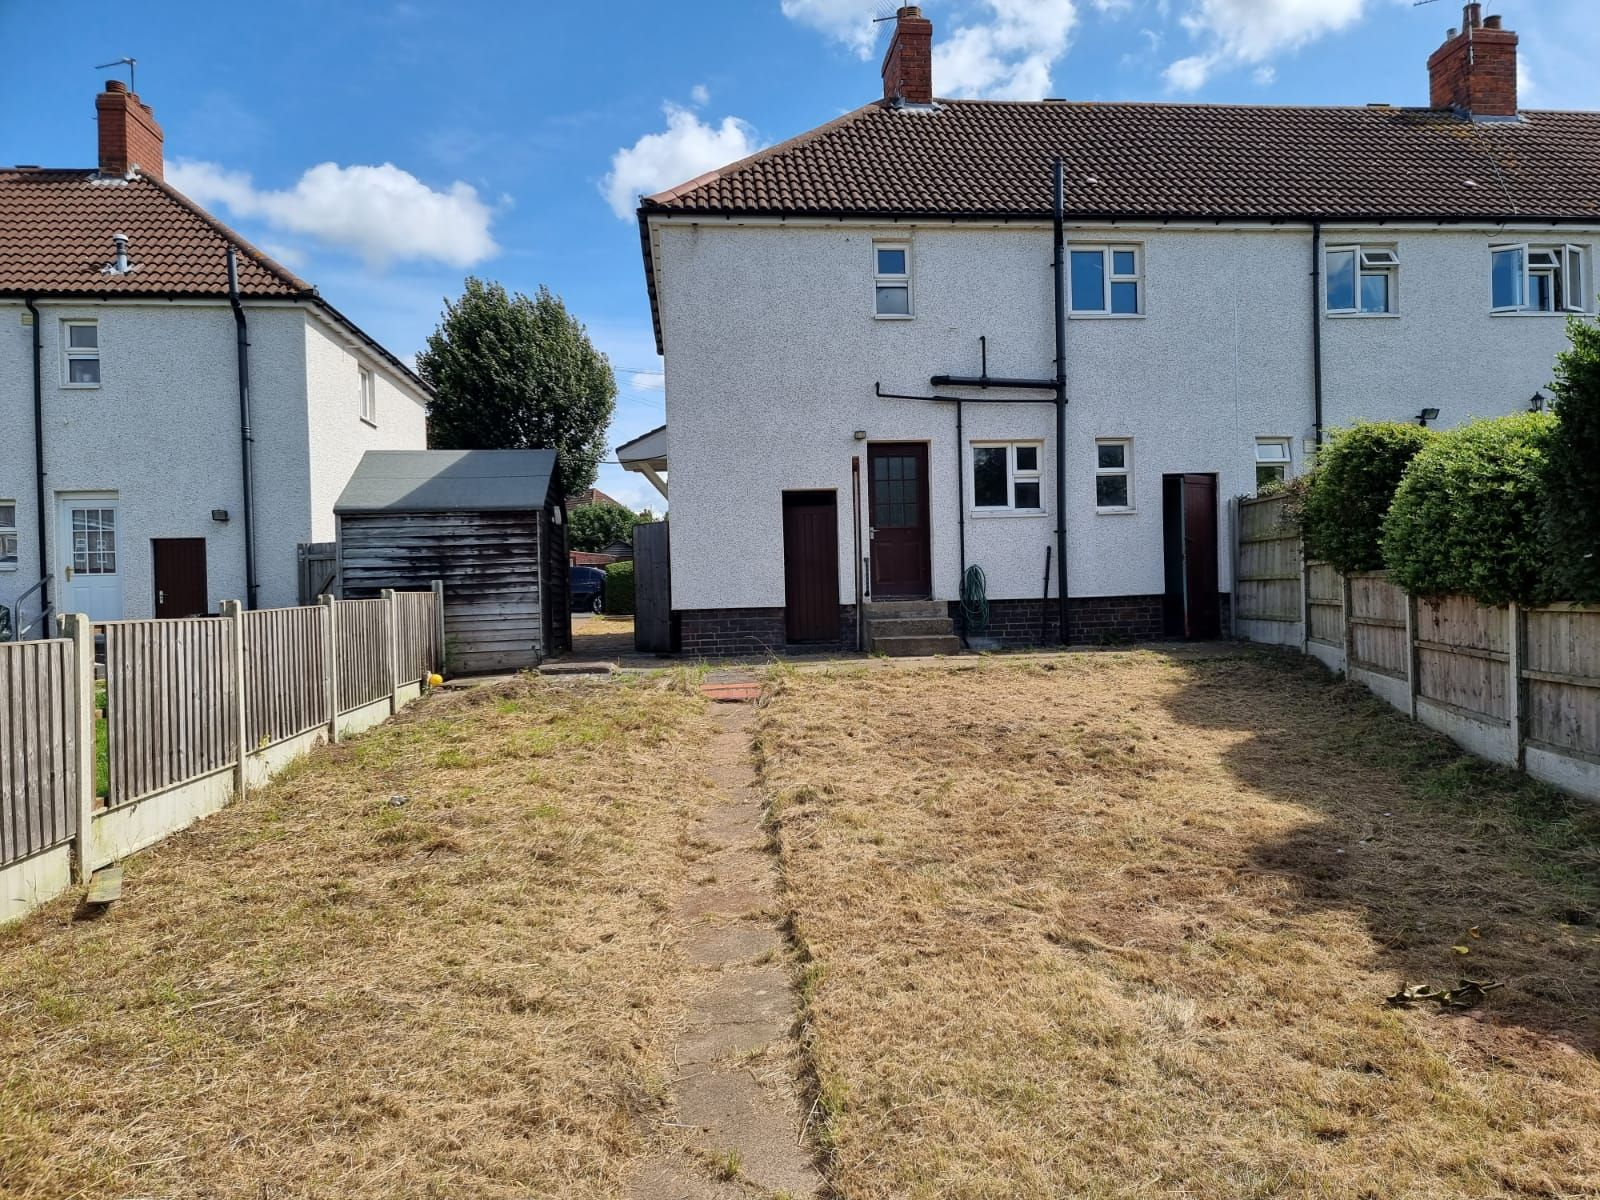 3 bedroom town house For Sale in Leicester - Photograph 12.